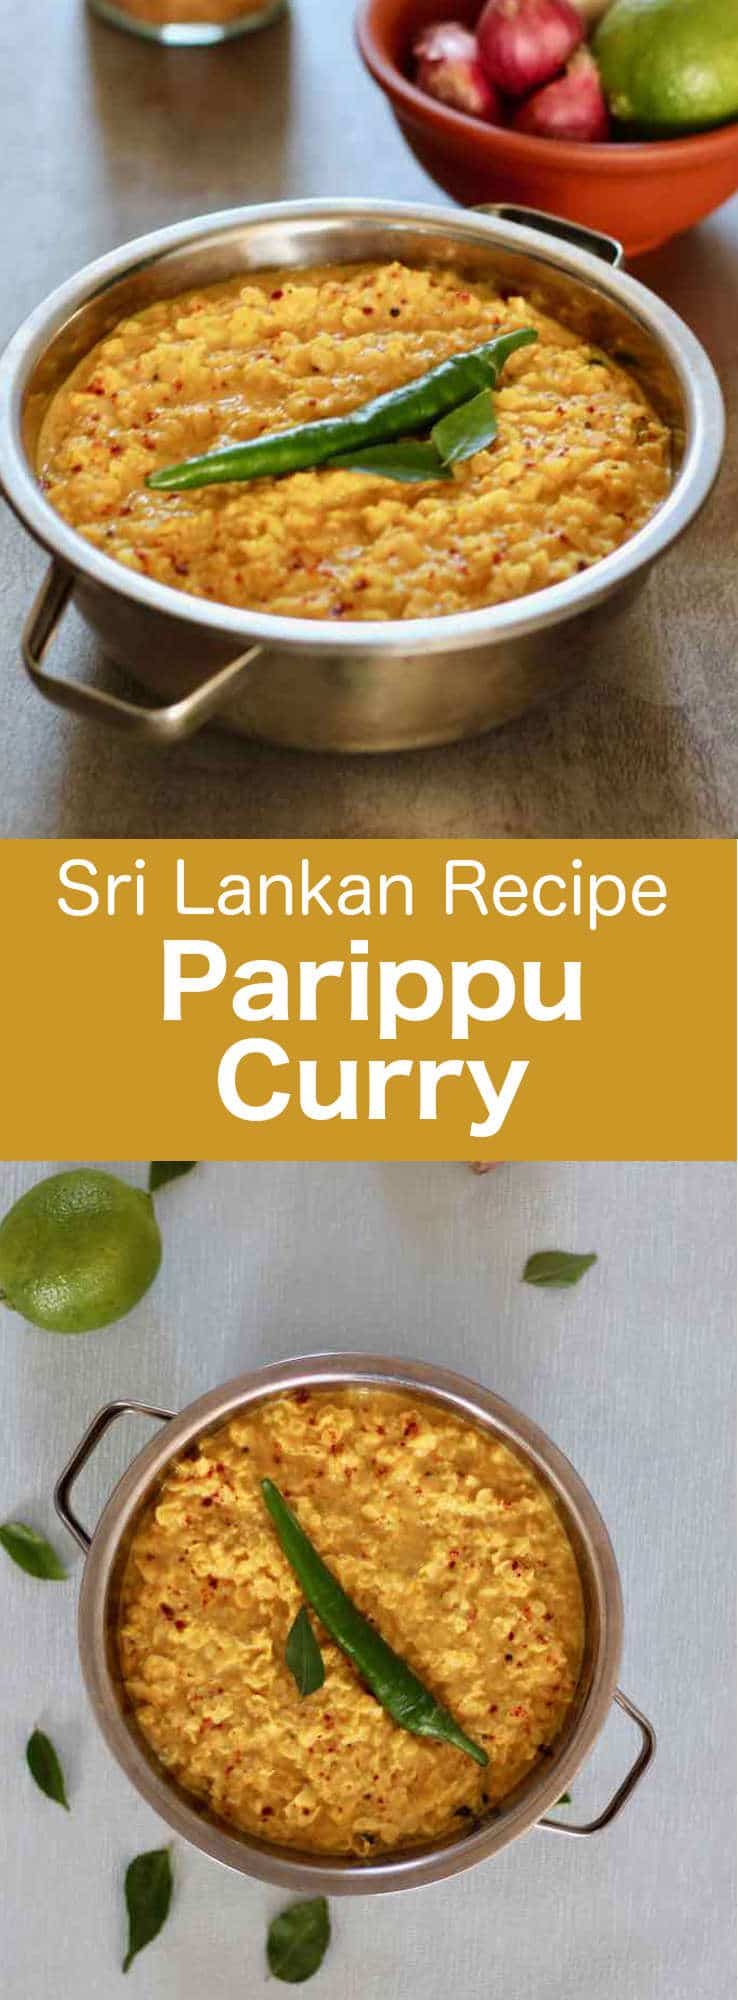 Parippu curry (or dhal curry) is a traditional Sri Lankan dish prepared with masoor dal (red lentils), cooked in coconut milk and scented with mustard seeds, saffron, turmeric, cumin and fenugreek. #SriLanka #SriLankanCuisine #SriLankanCurry #SriLankanRecipe #WorldCuisine #196flavors